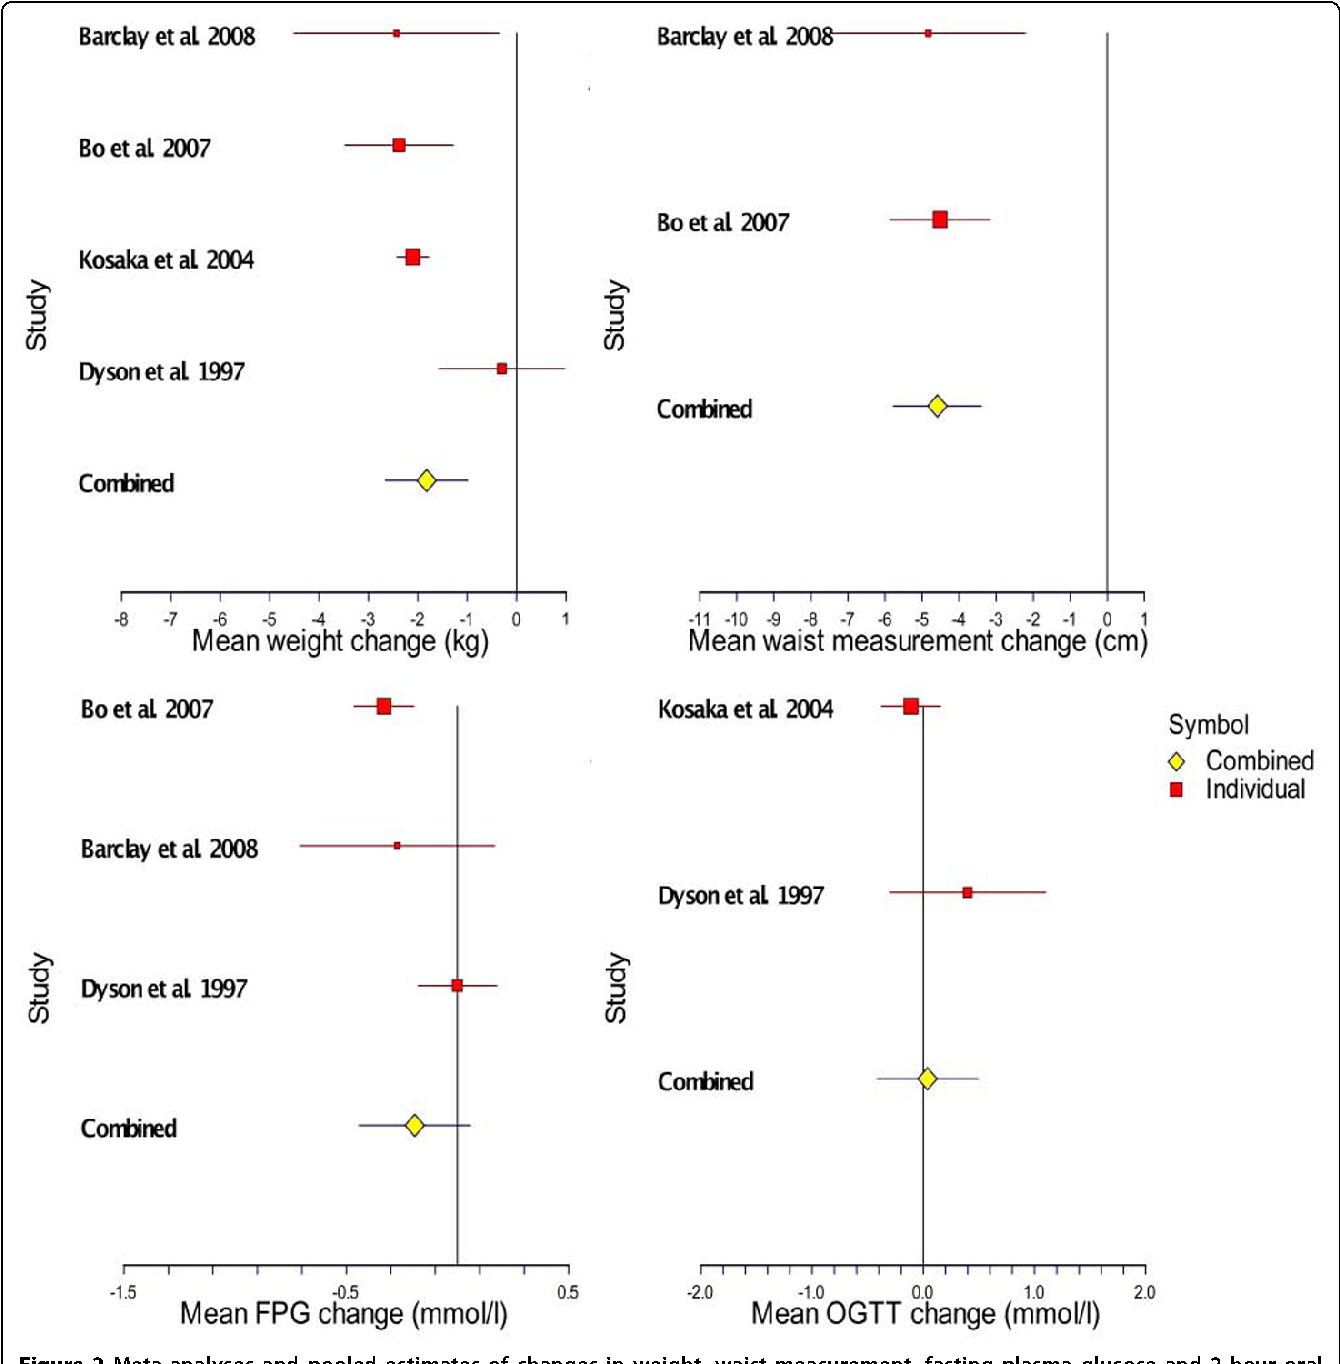 Figure 2 Meta-analyses and pooled estimates of changes in weight, waist measurement, fasting plasma glucose and 2-hour oral glucose tolerance from selected studies at 1 year follow-up.